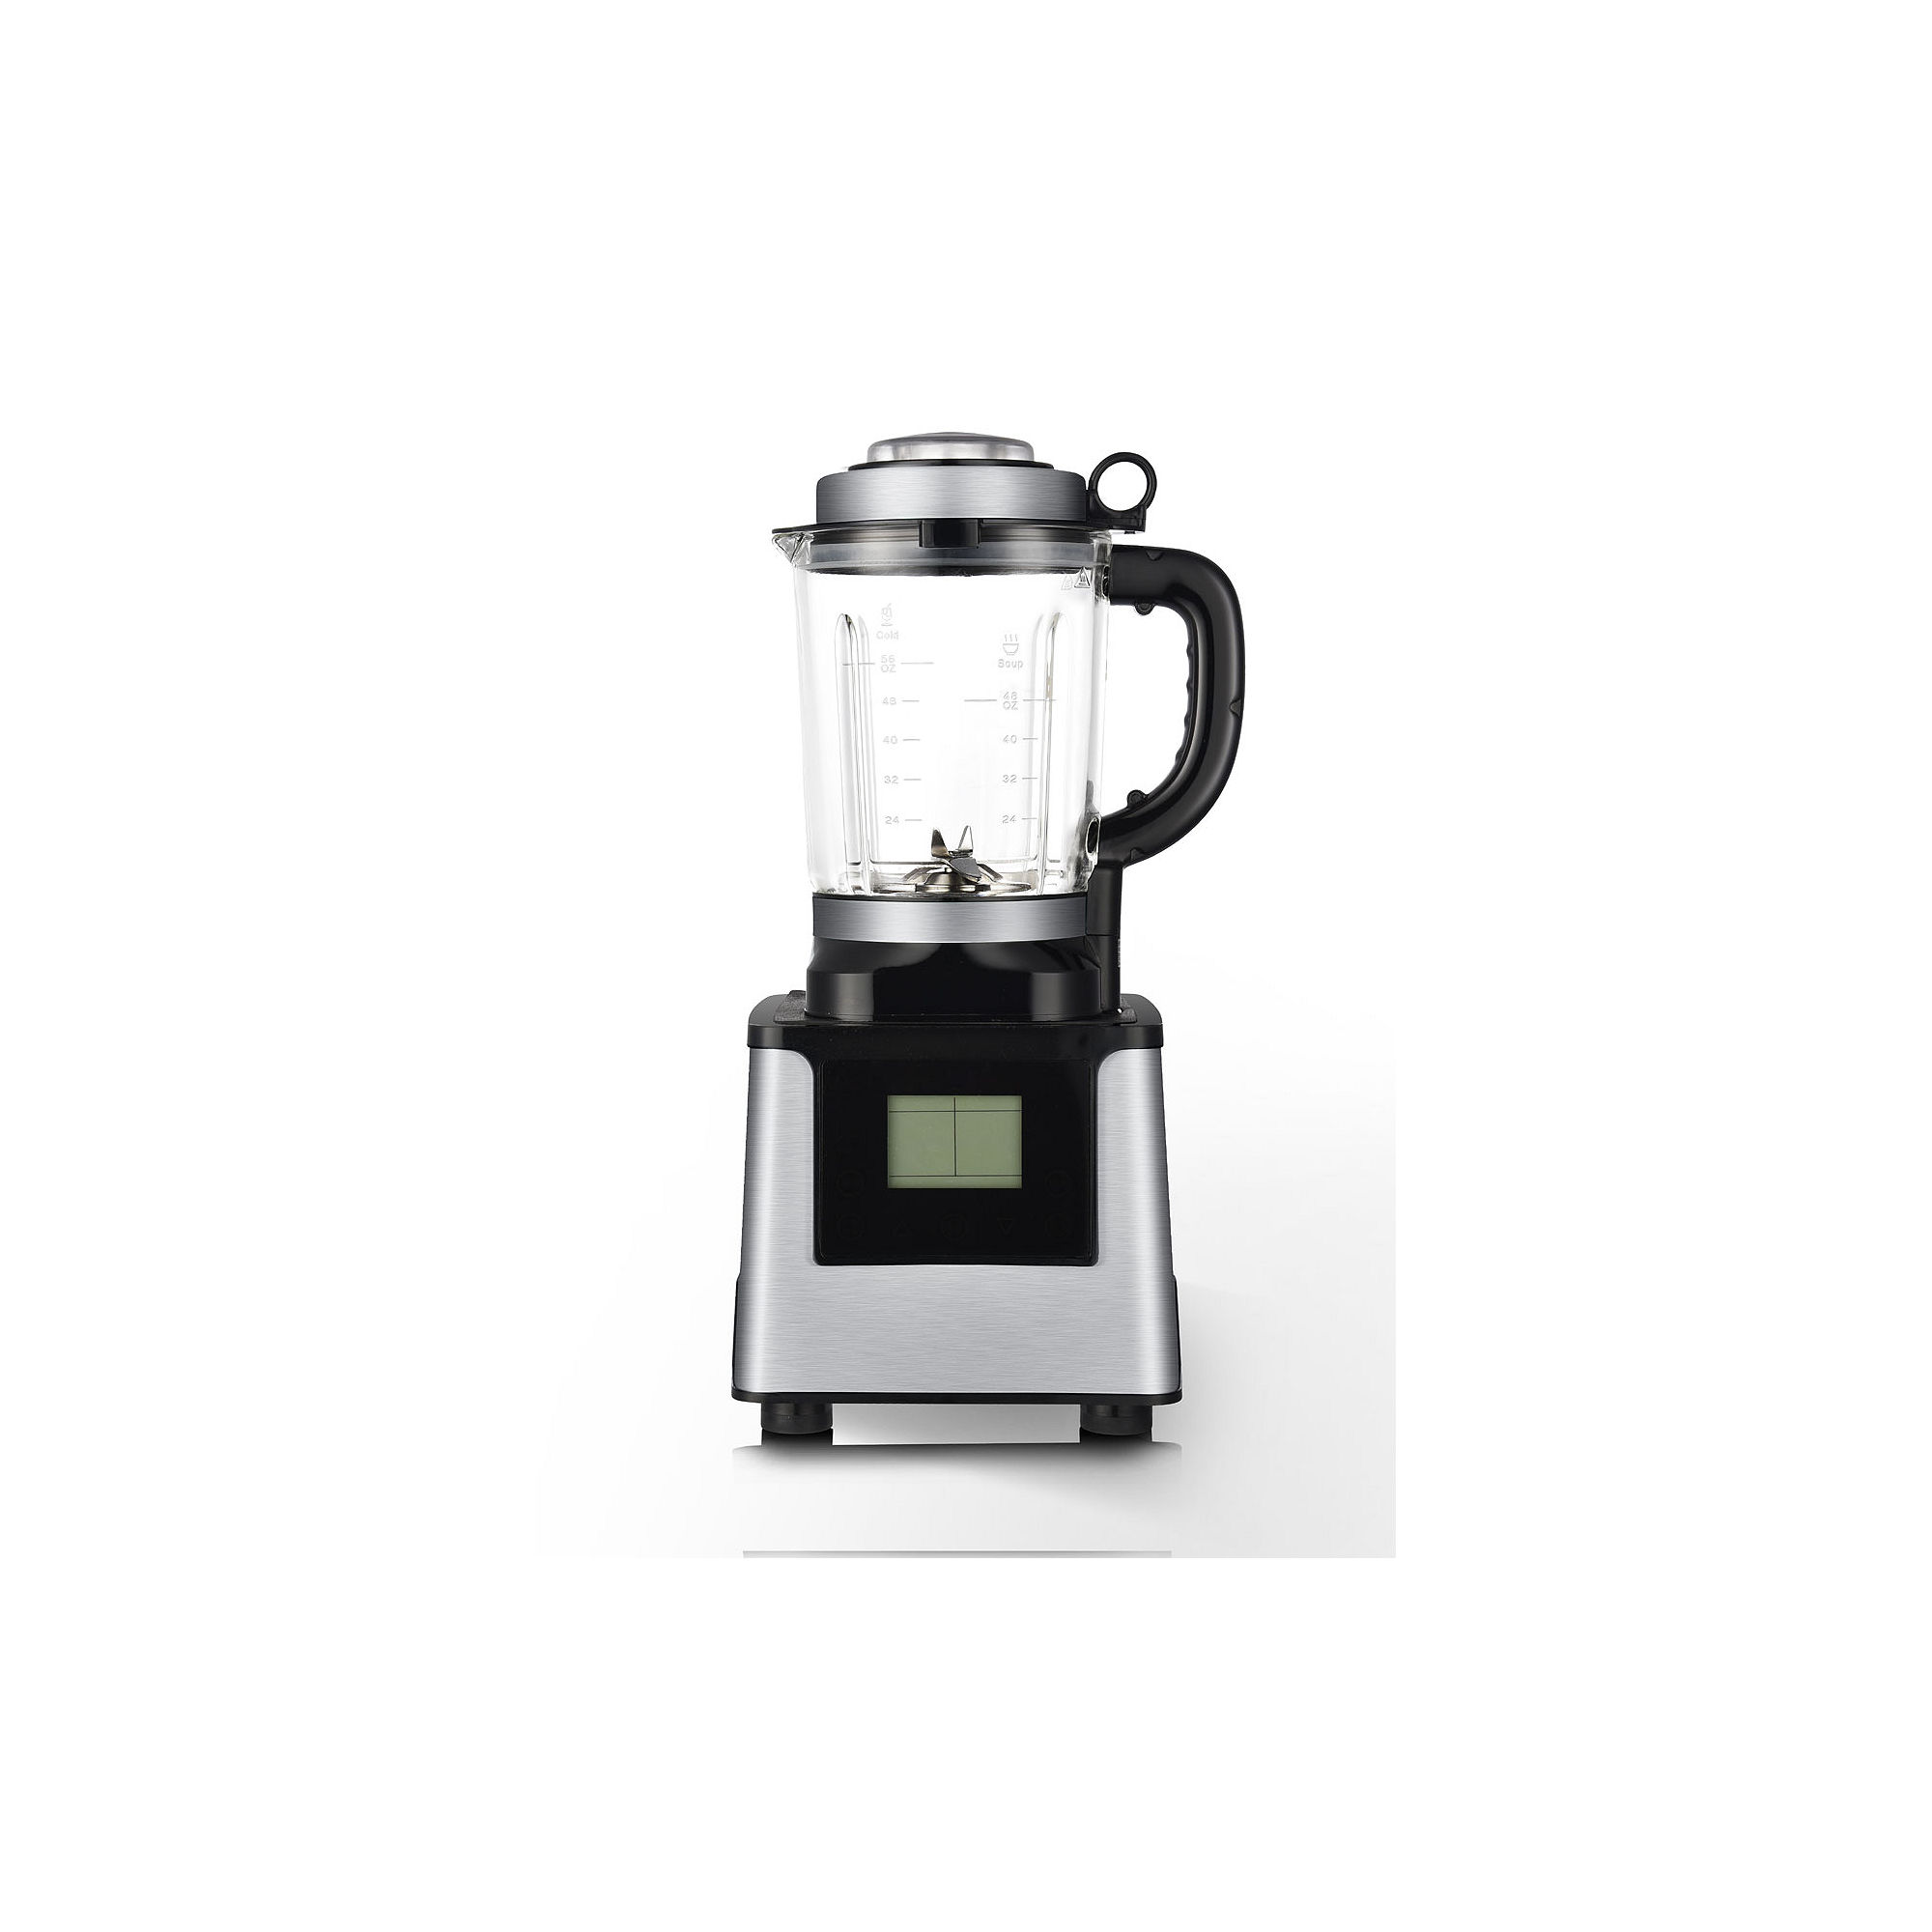 SPT CL-513: Multi-Functional Pulverizing Blender with Heating Element